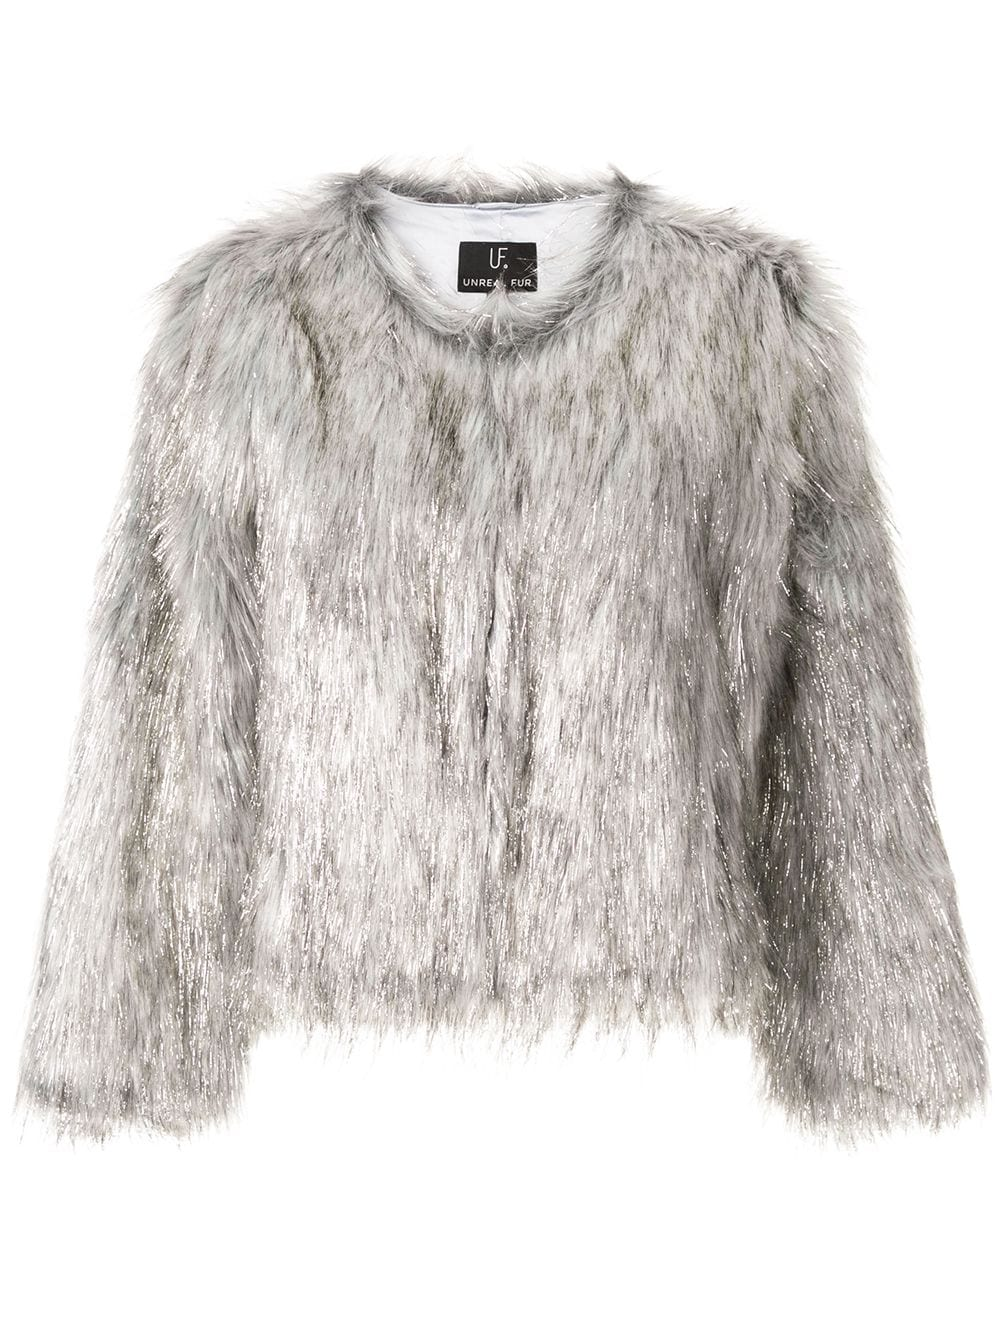 Fire and Ice Jacket - Unreal Fur